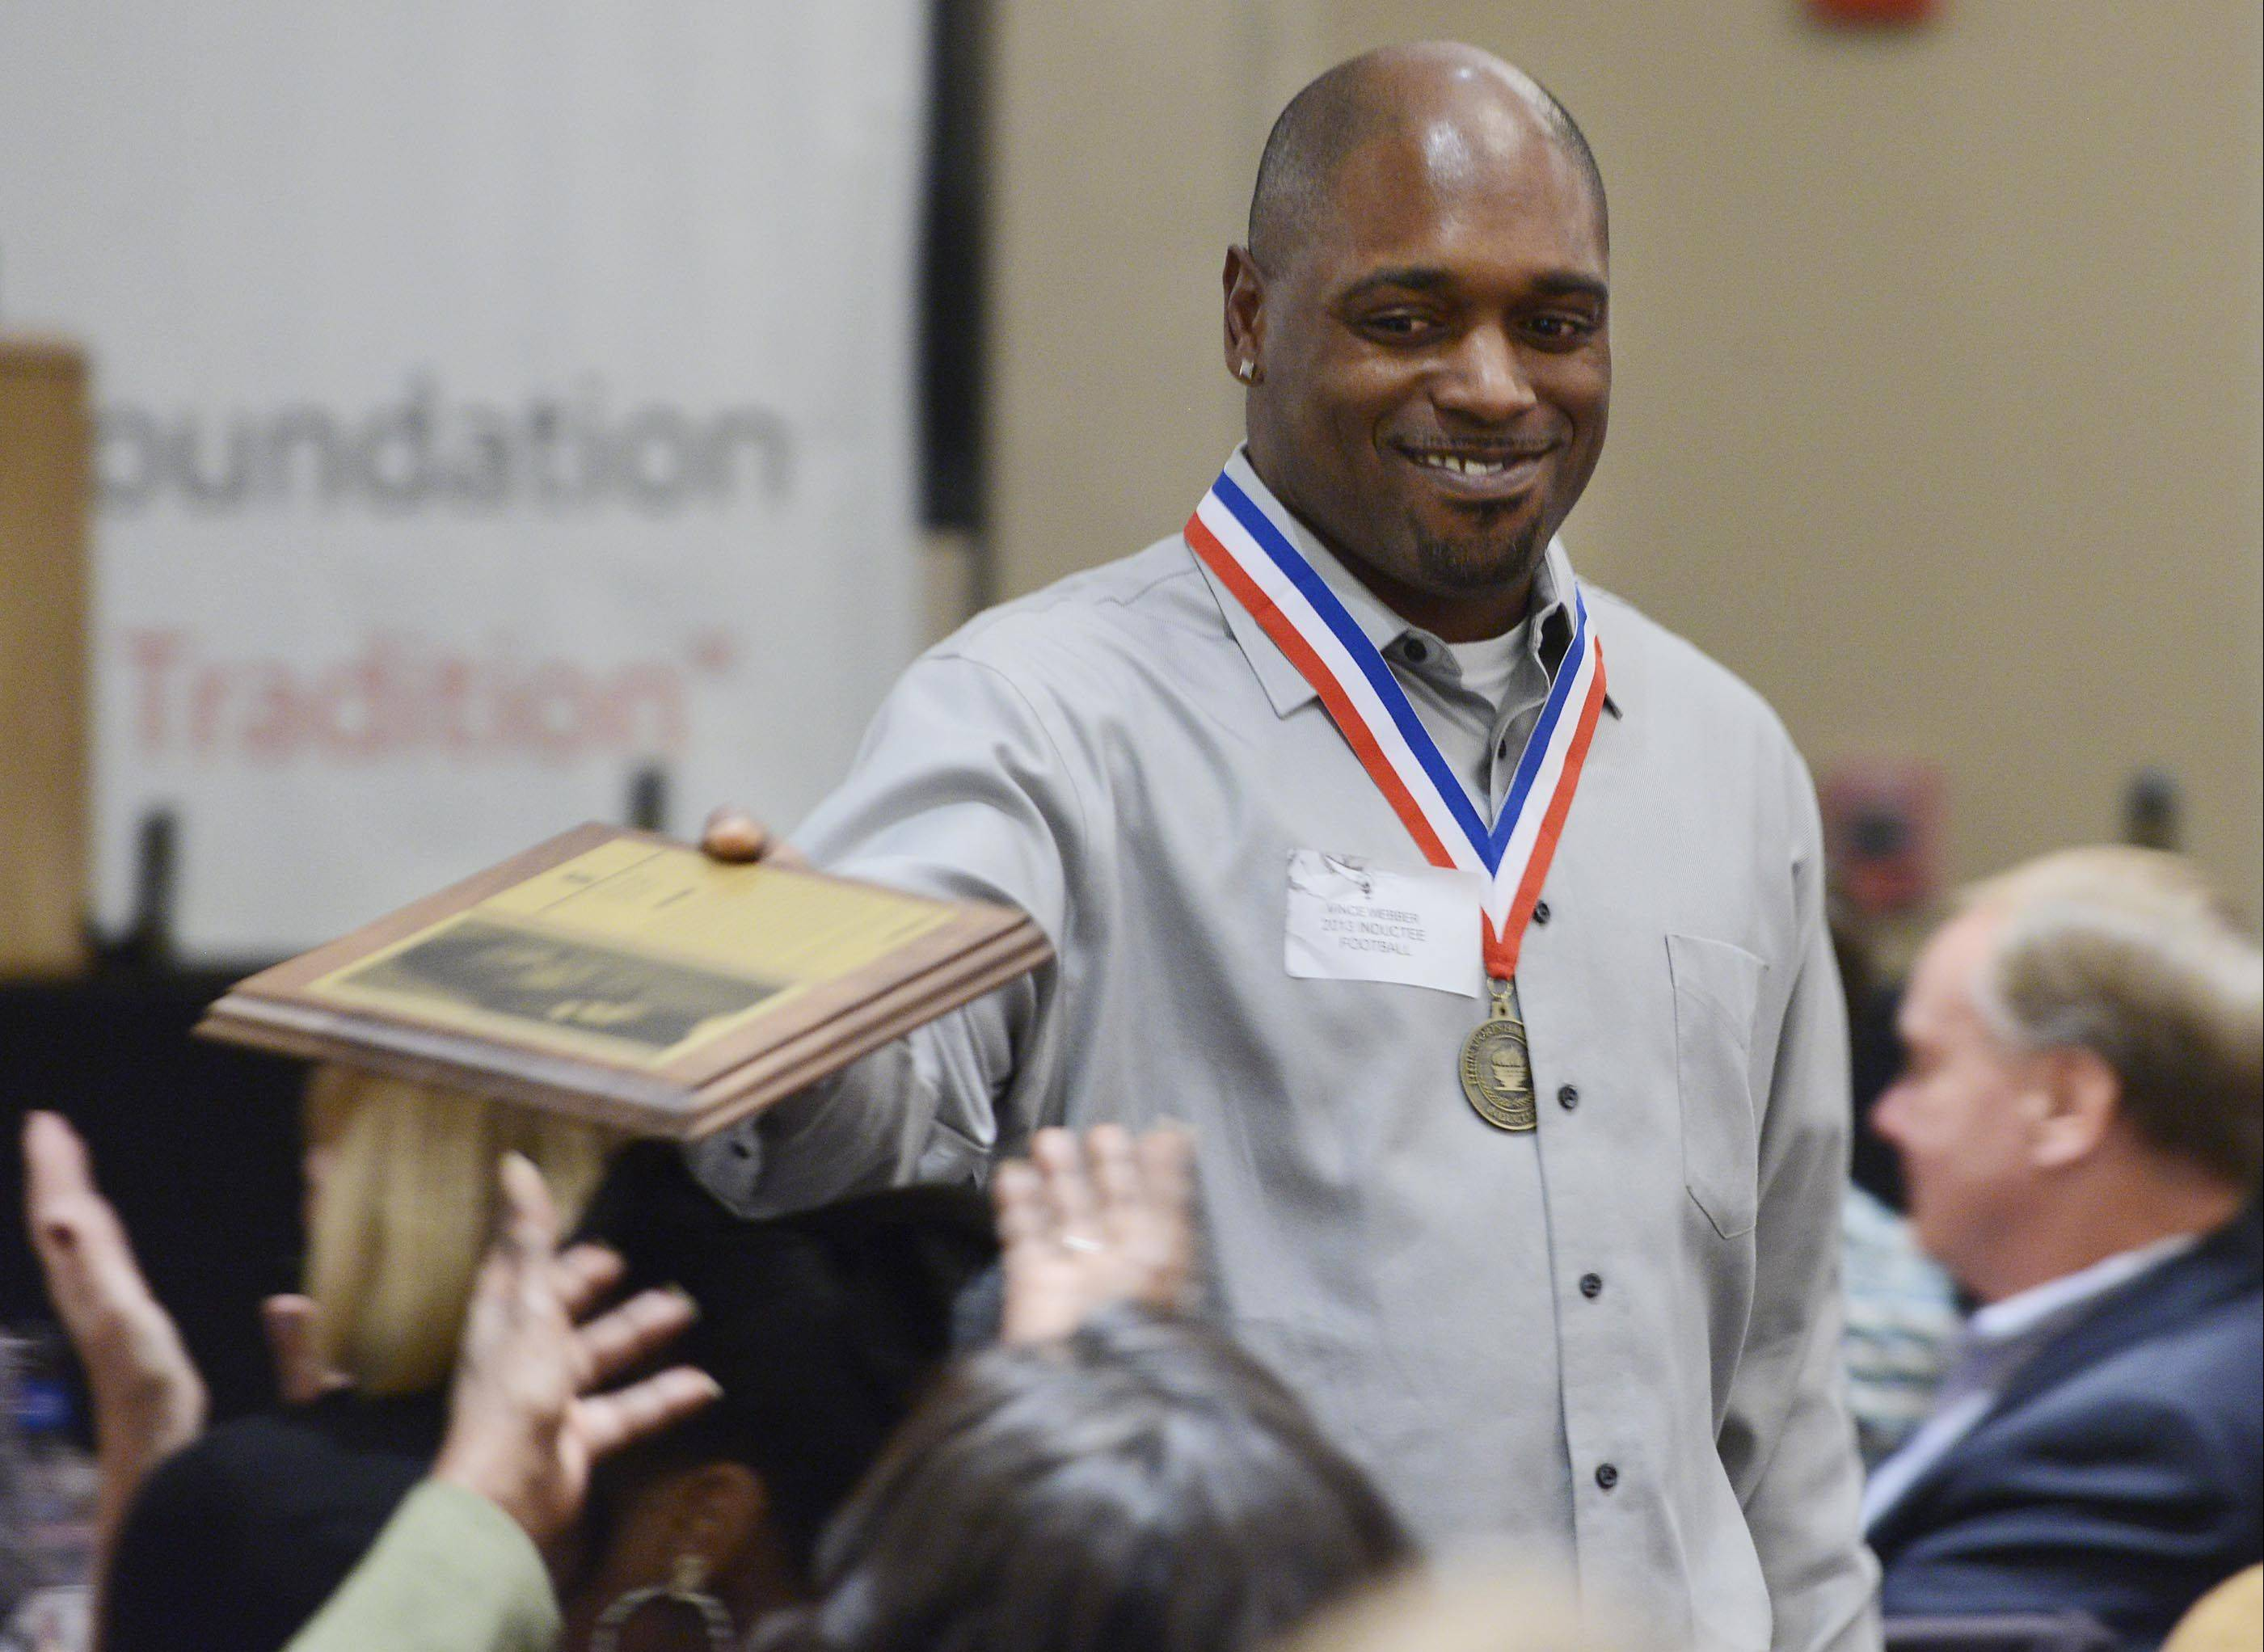 Vince Webber, a 1998 Larkin High School graduate, hands his plaque to his family Sunday during the 34th Induction Ceremony of the Elgin Sport Hall of Fame at The Centre of Elgin. He set several school records for football statistics.